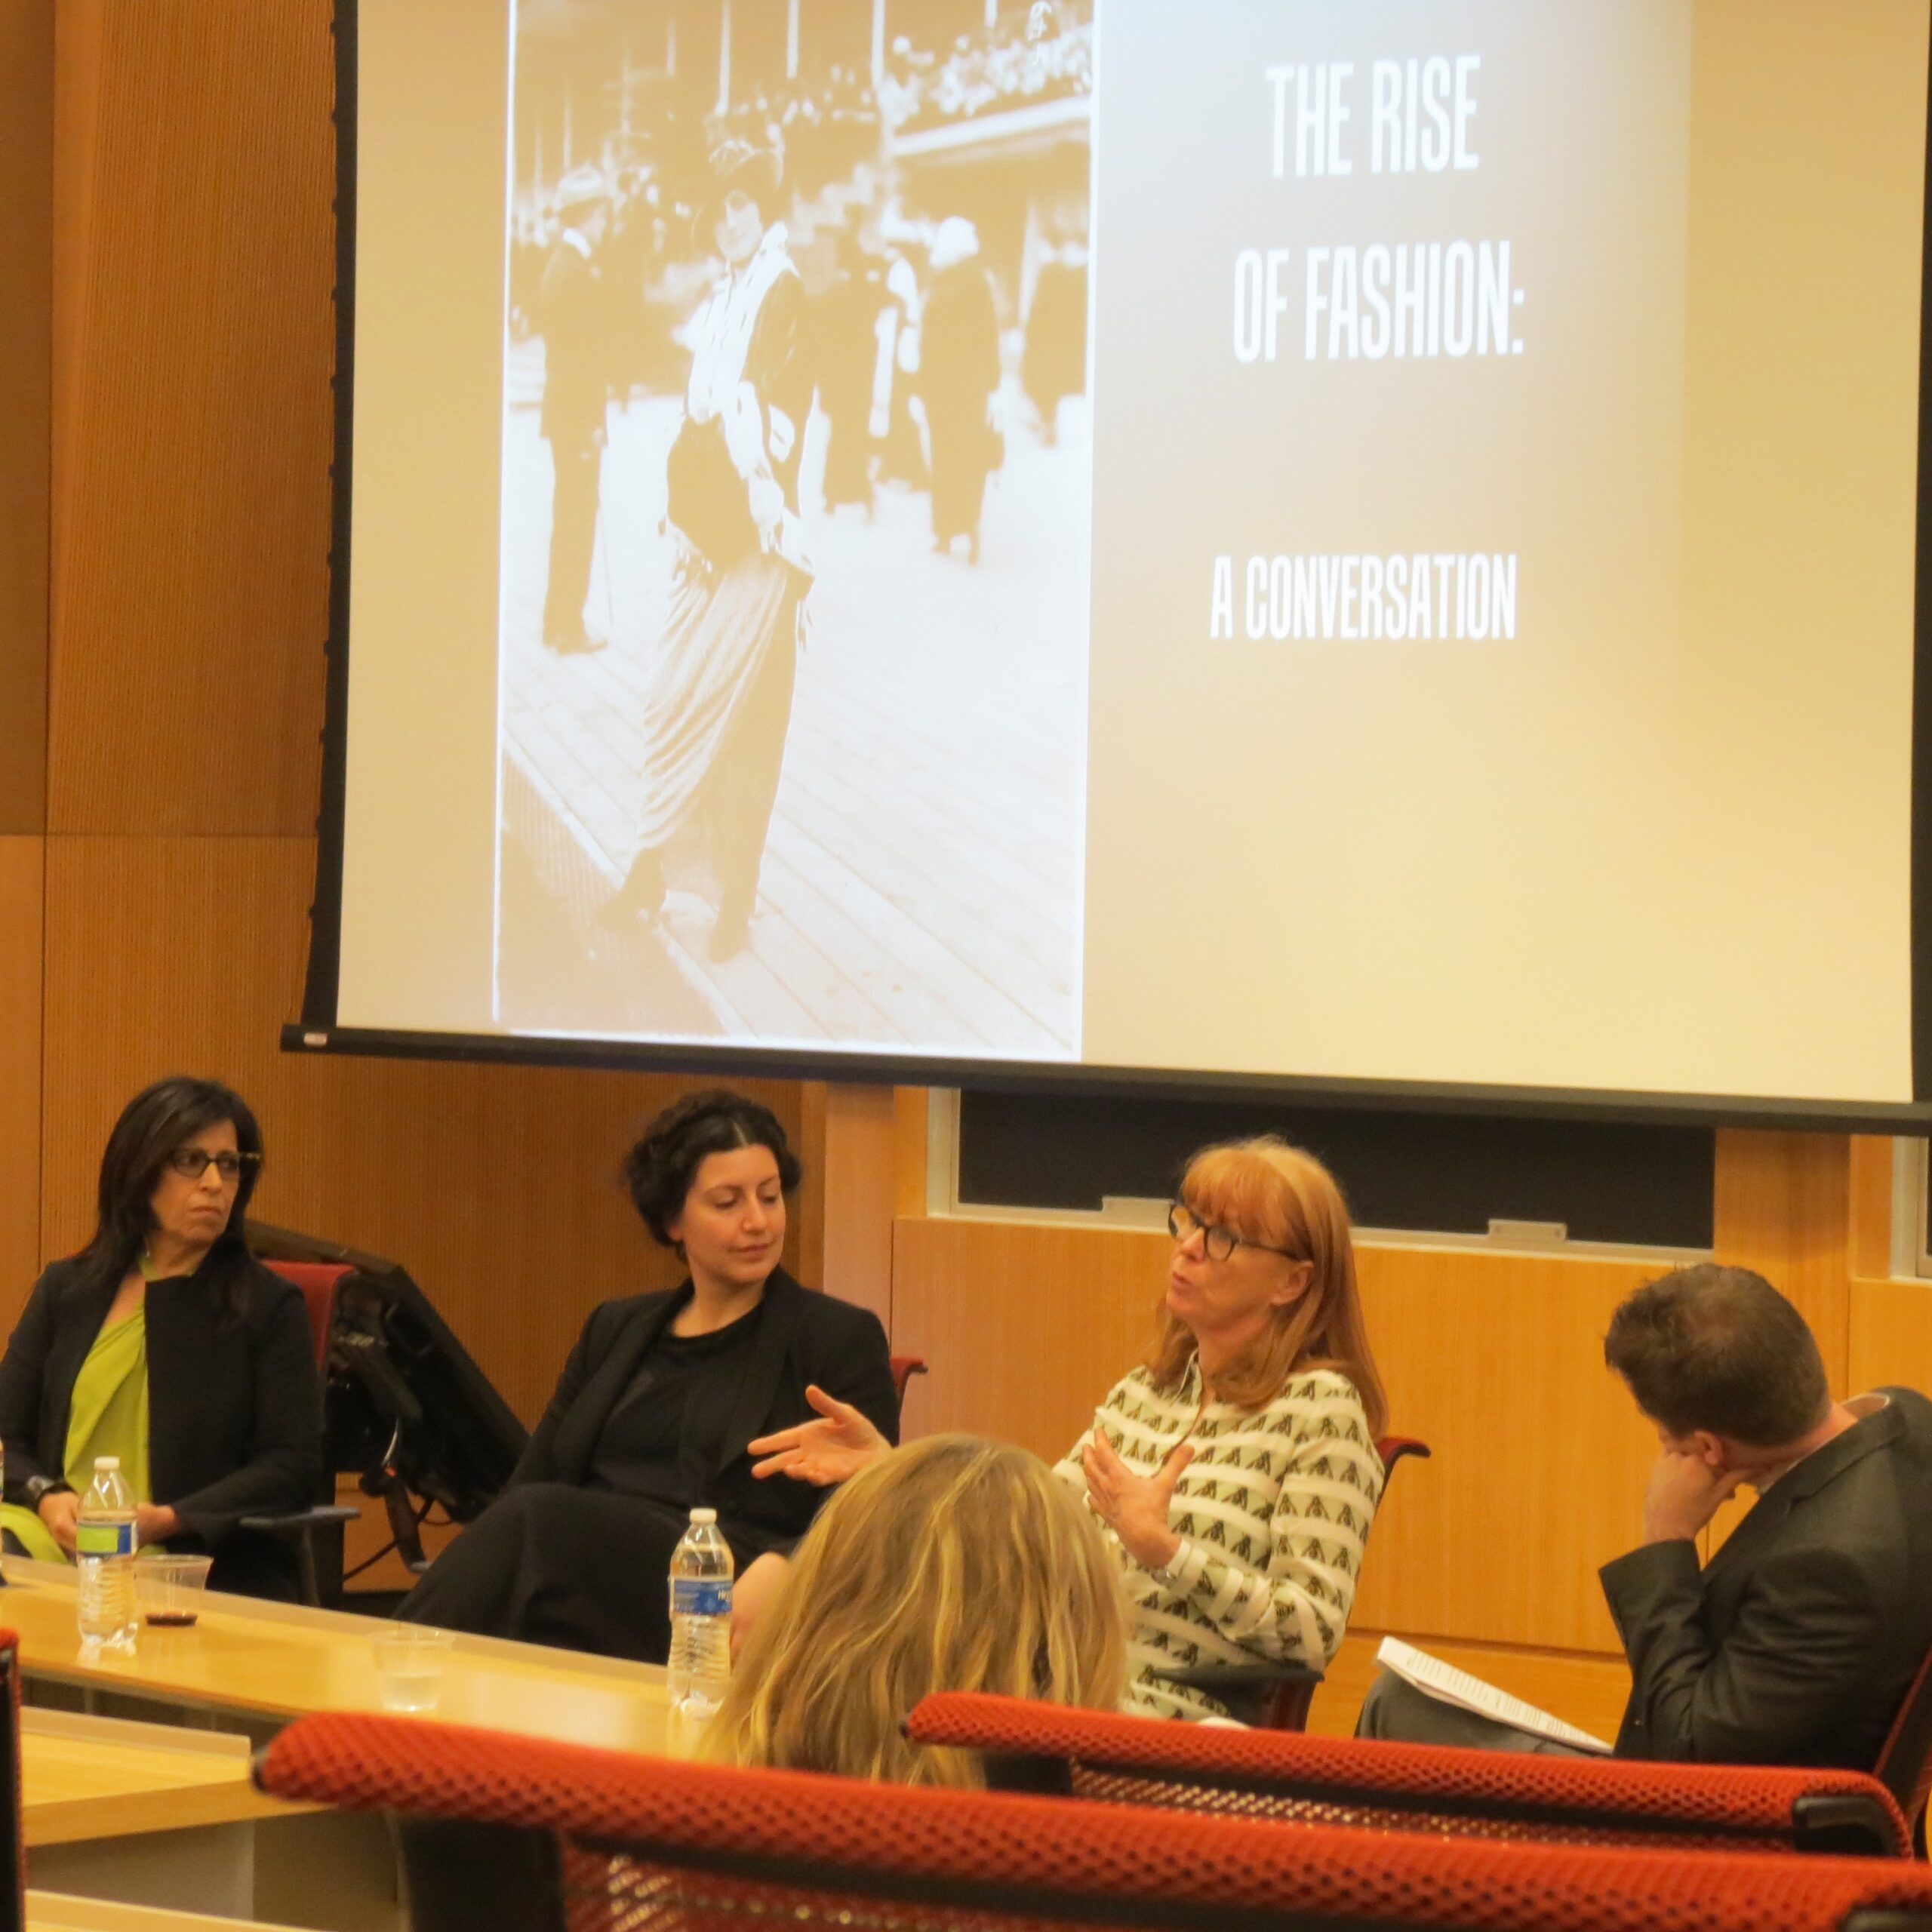 four panelists in conversation with audience in foreground